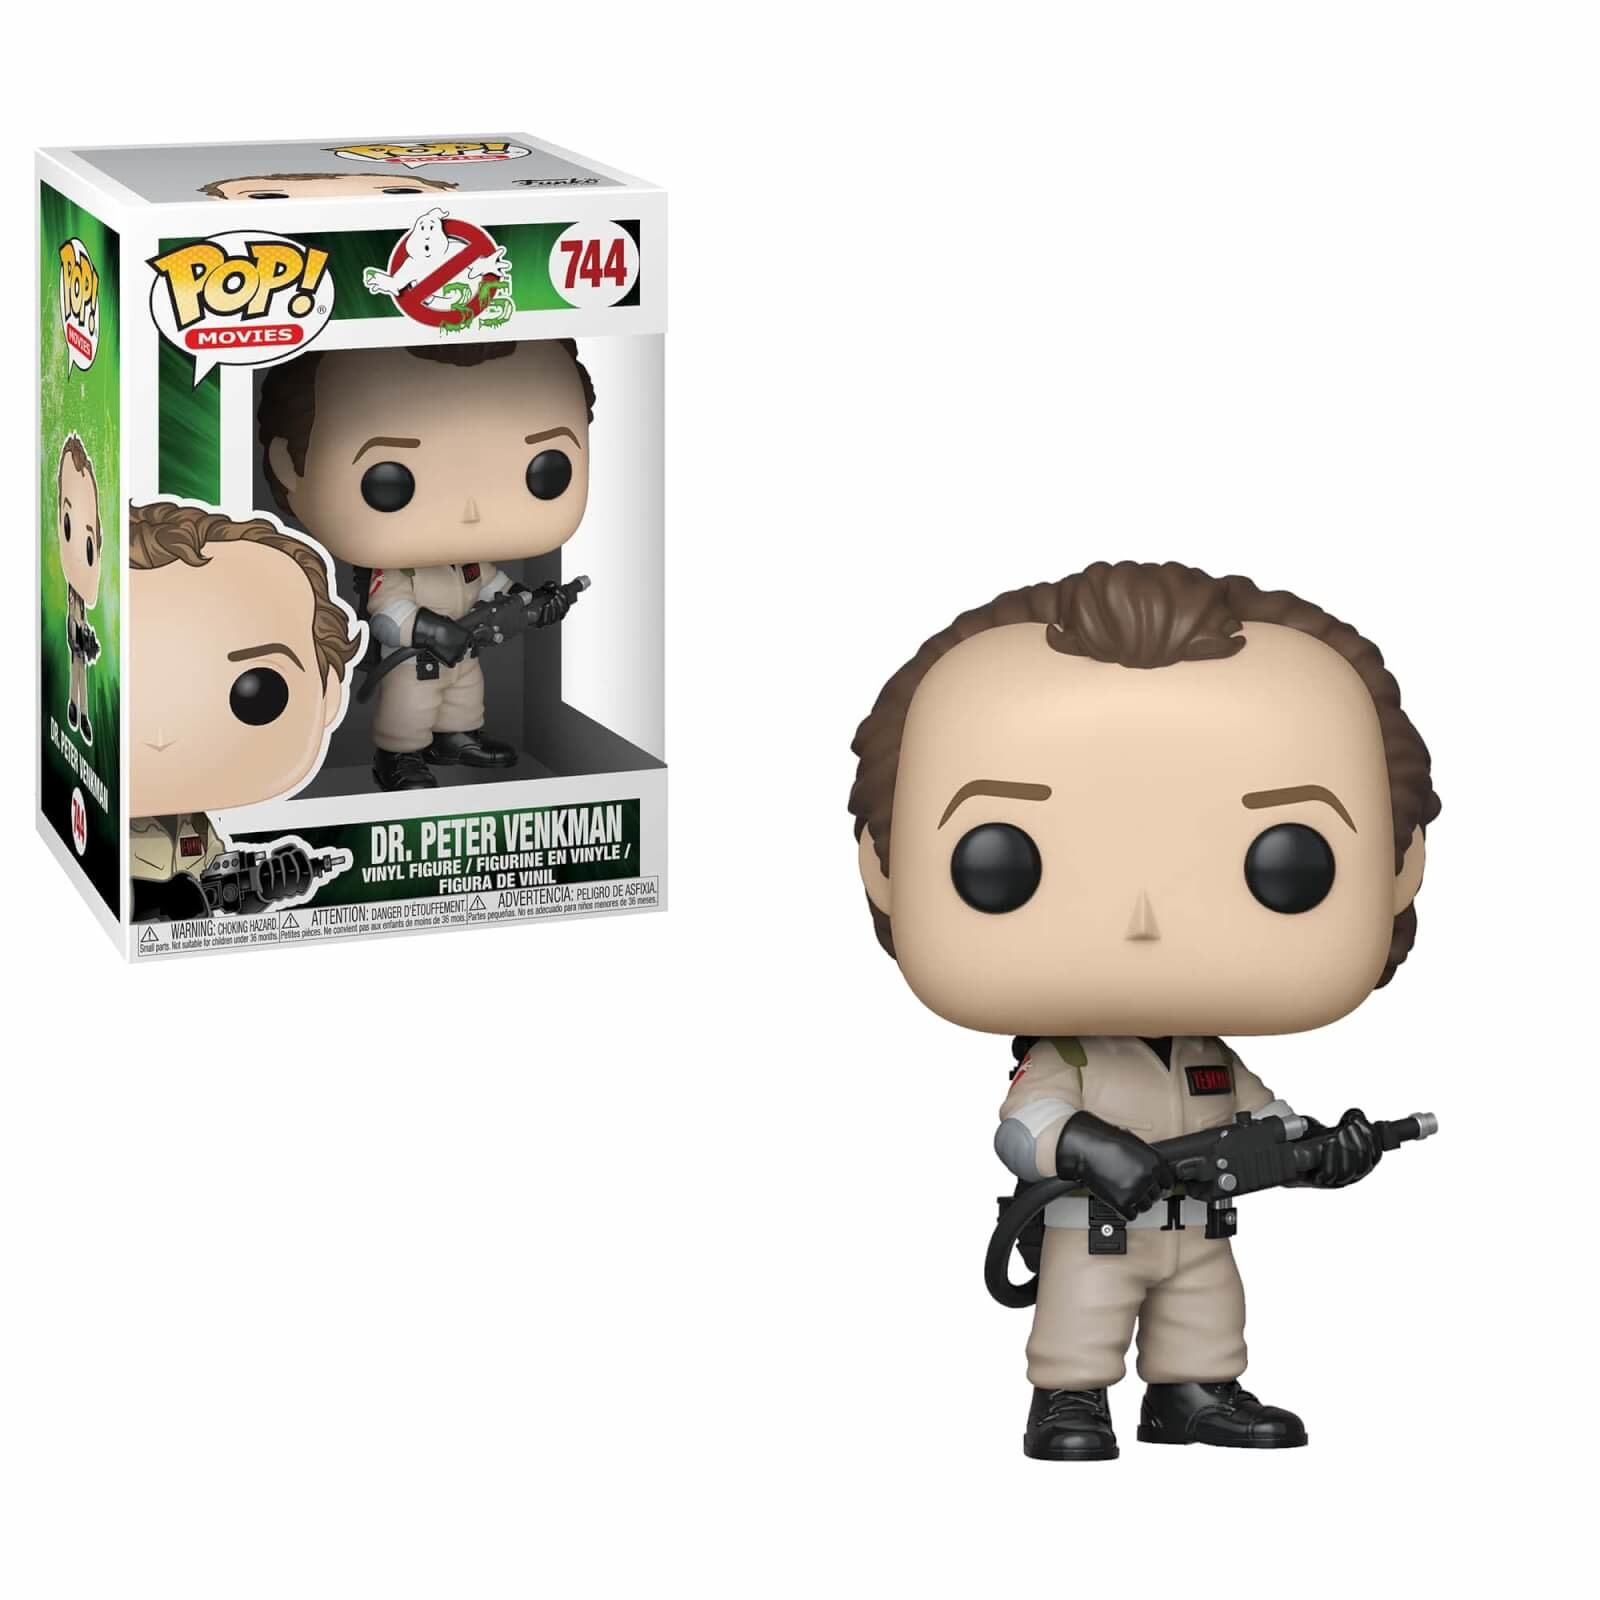 Pop! Ghostbusters Dr. Peter Venkman